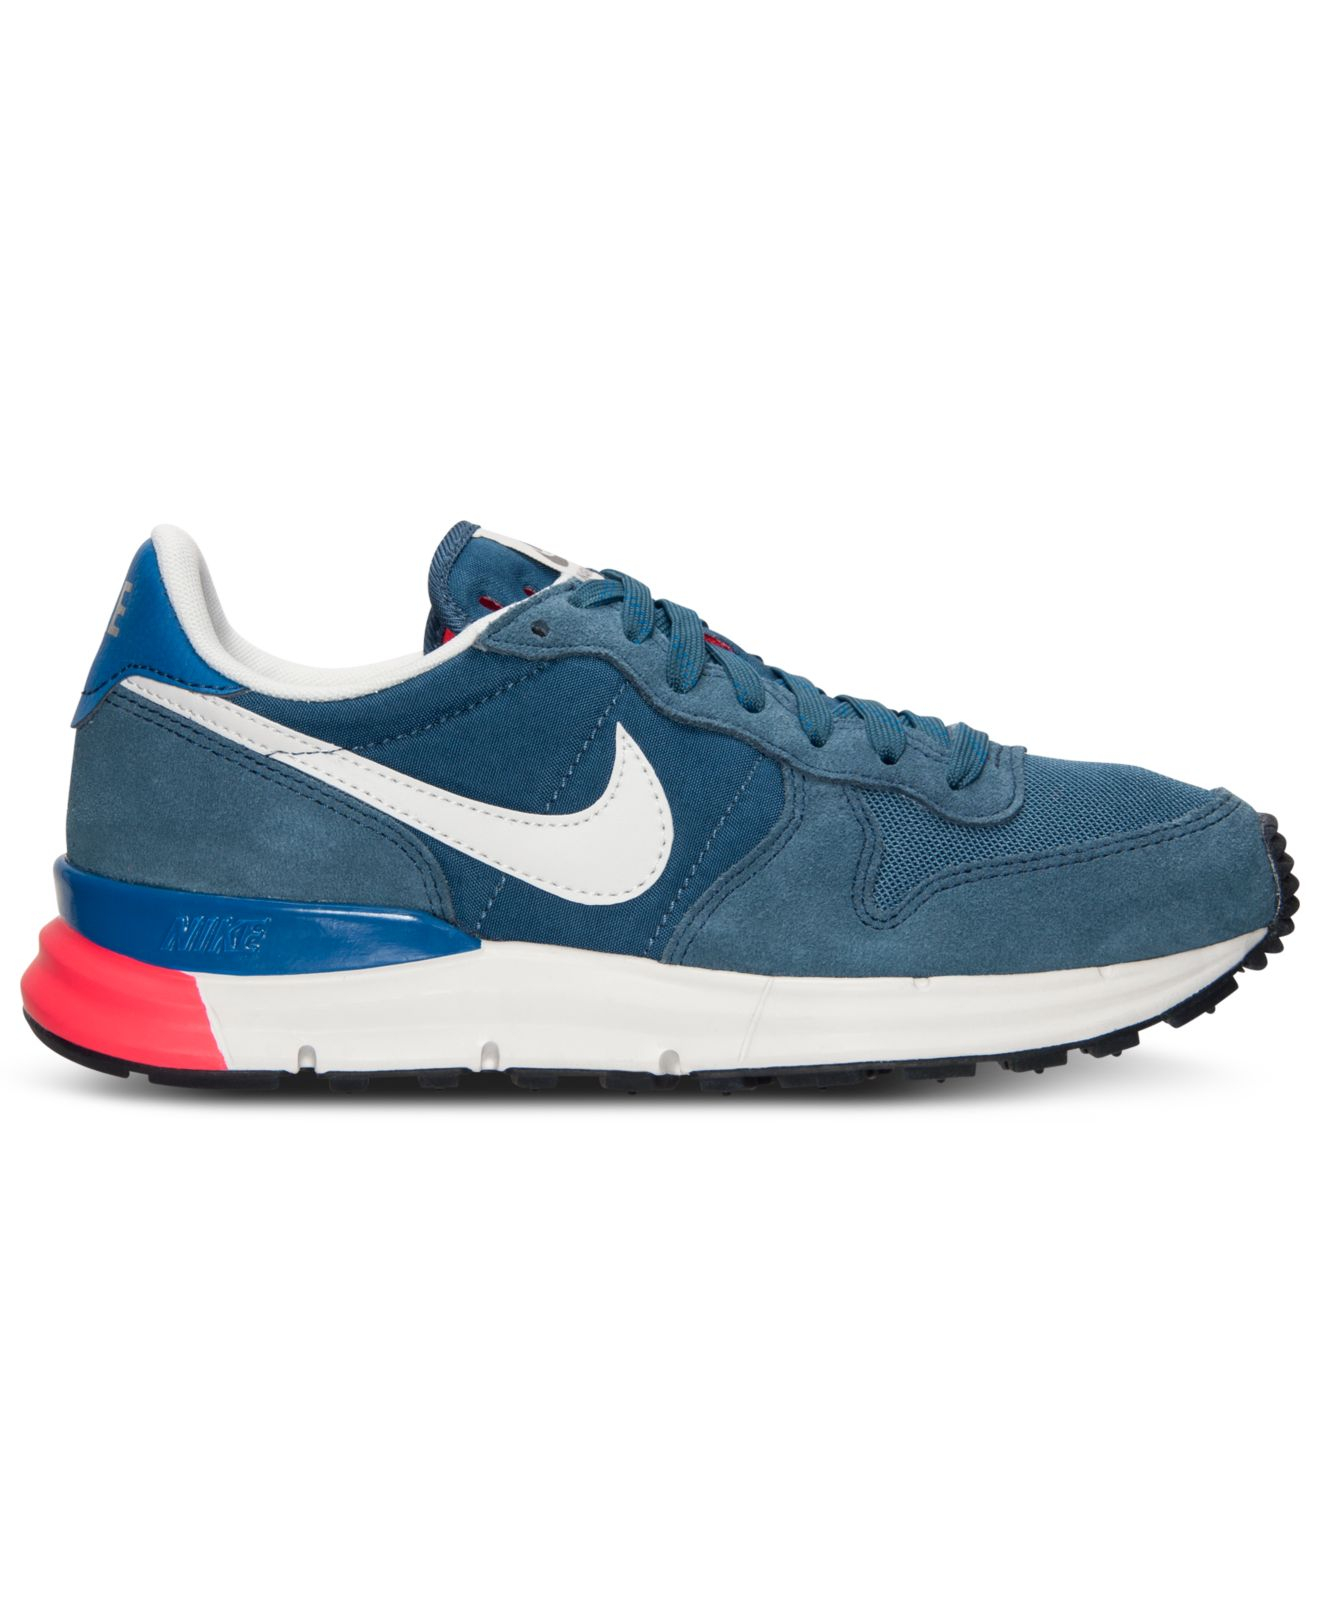 uk availability 3f2ee 8c02f Previously sold at Macy s · Men s Nike Internationalist .